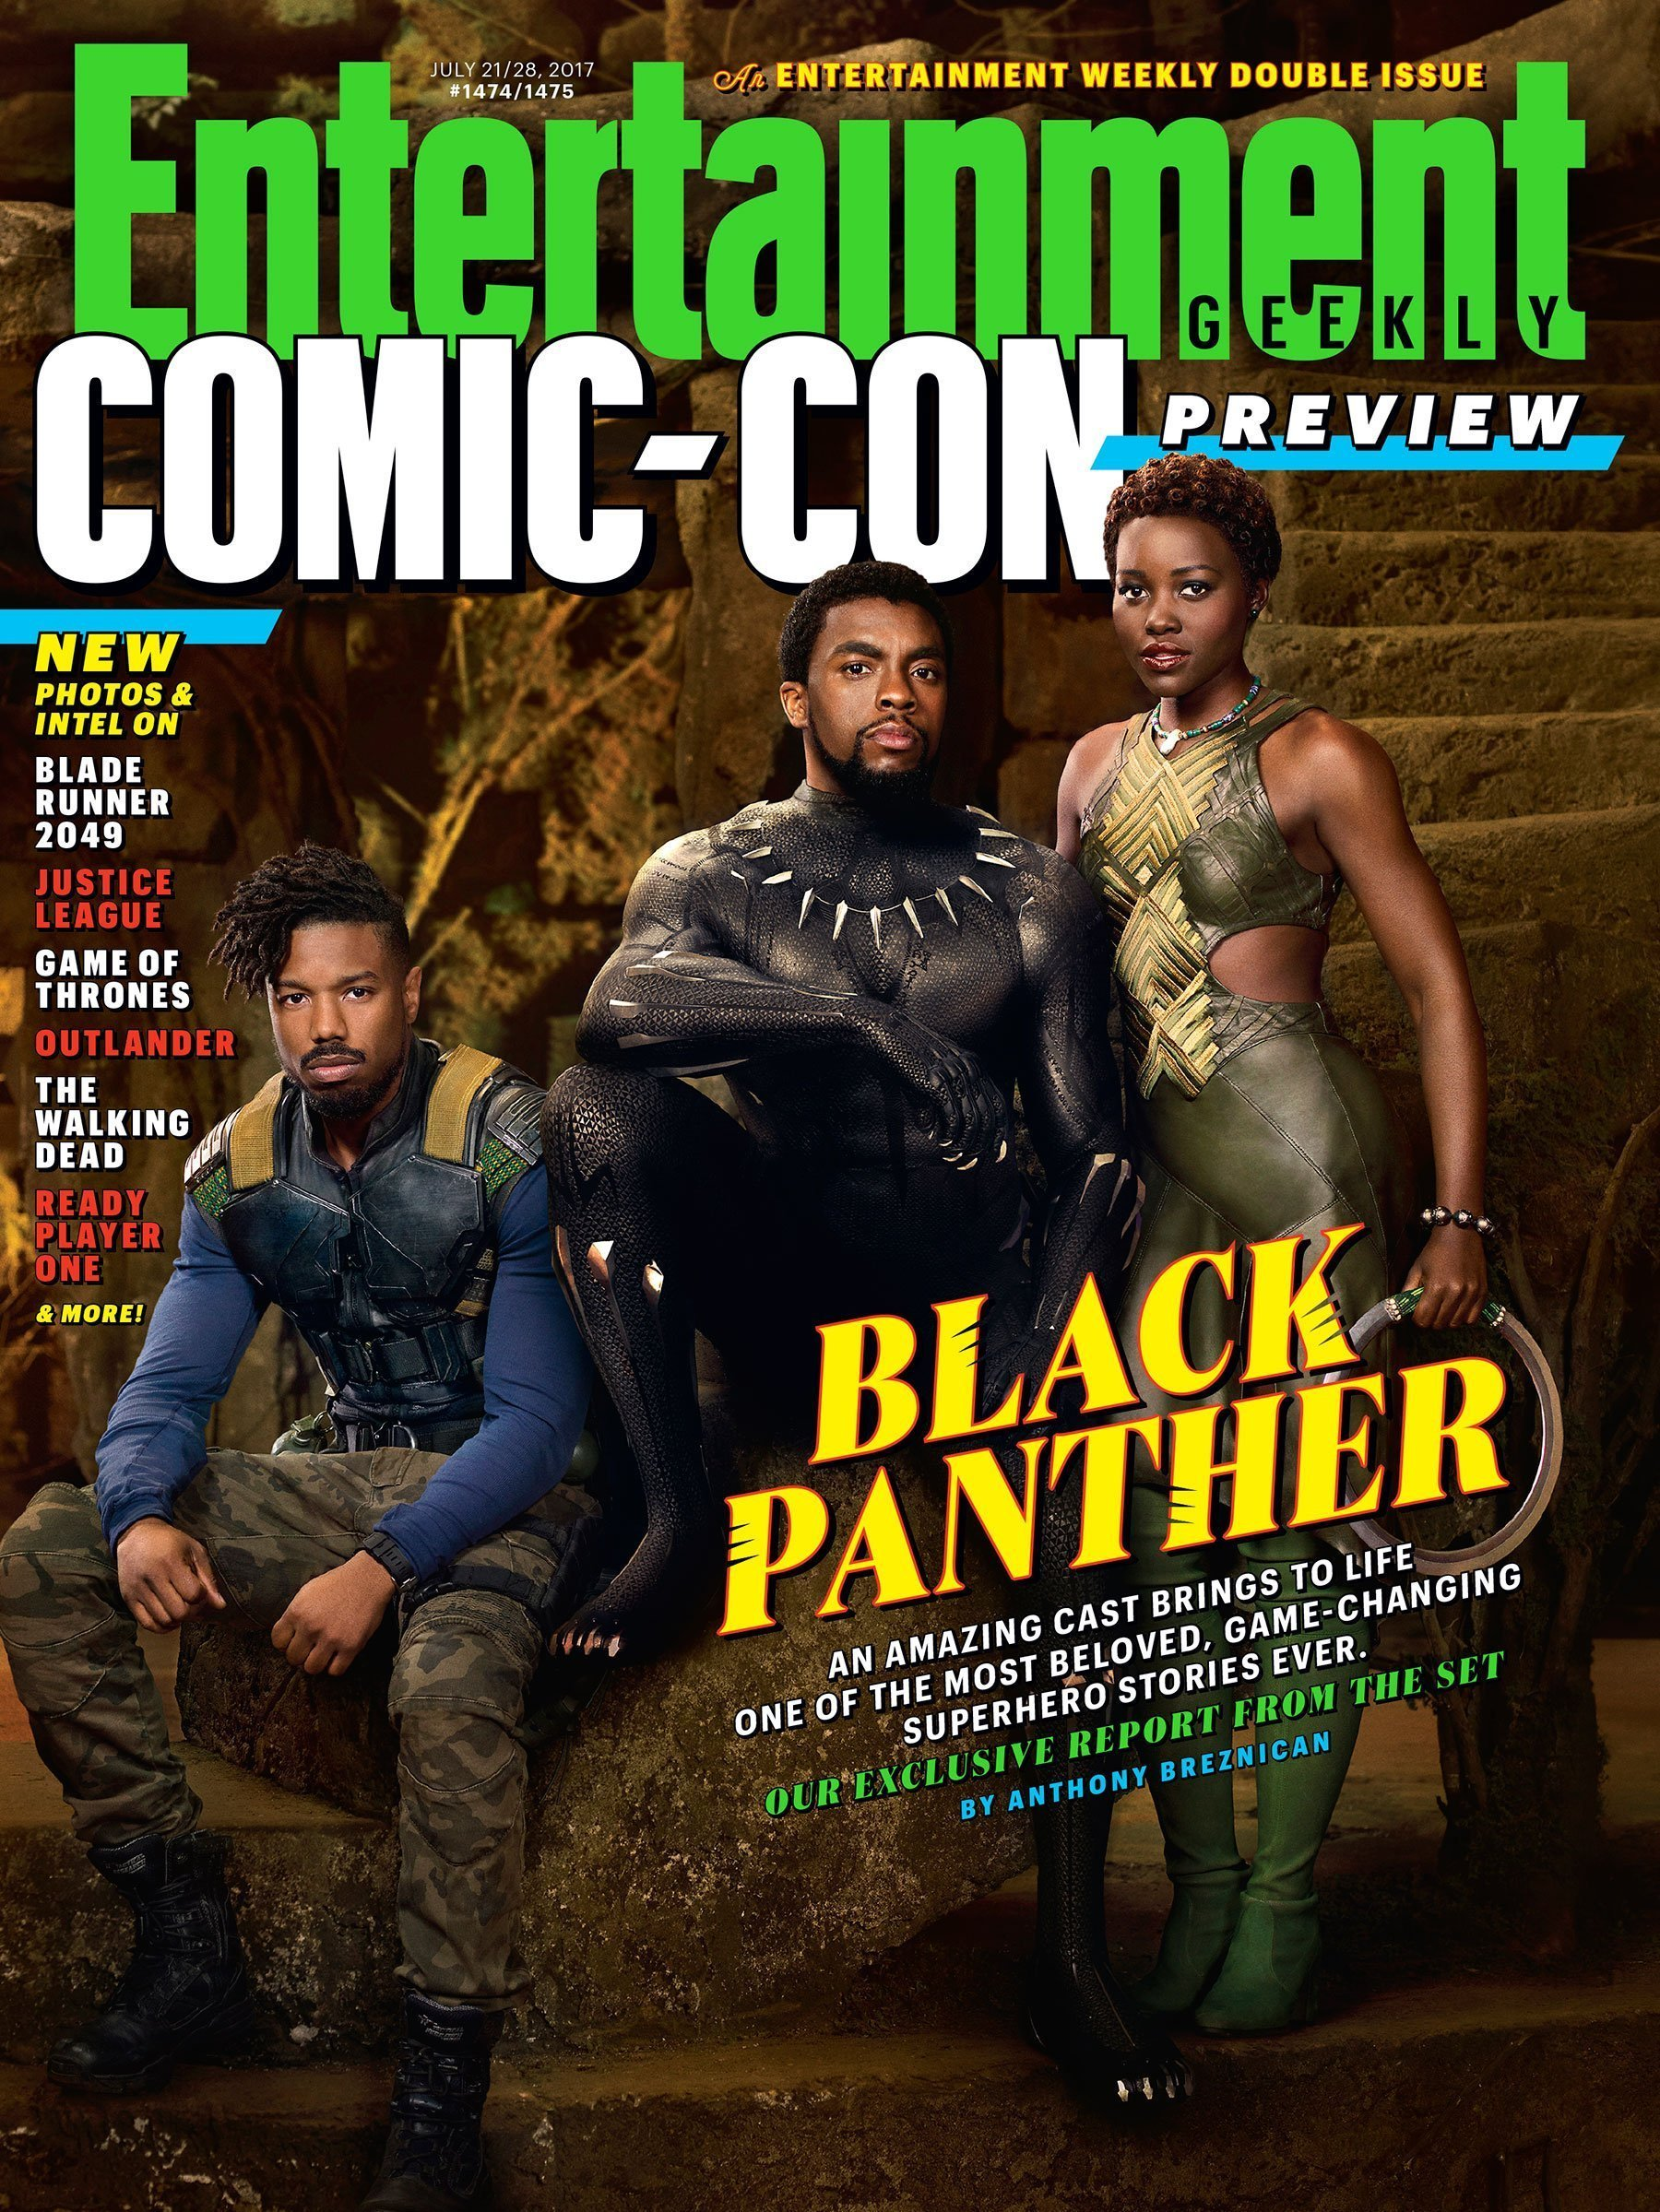 Couverture d'Entertainment Weekly avec le film Black Panther réalisé par Ryan Coogler